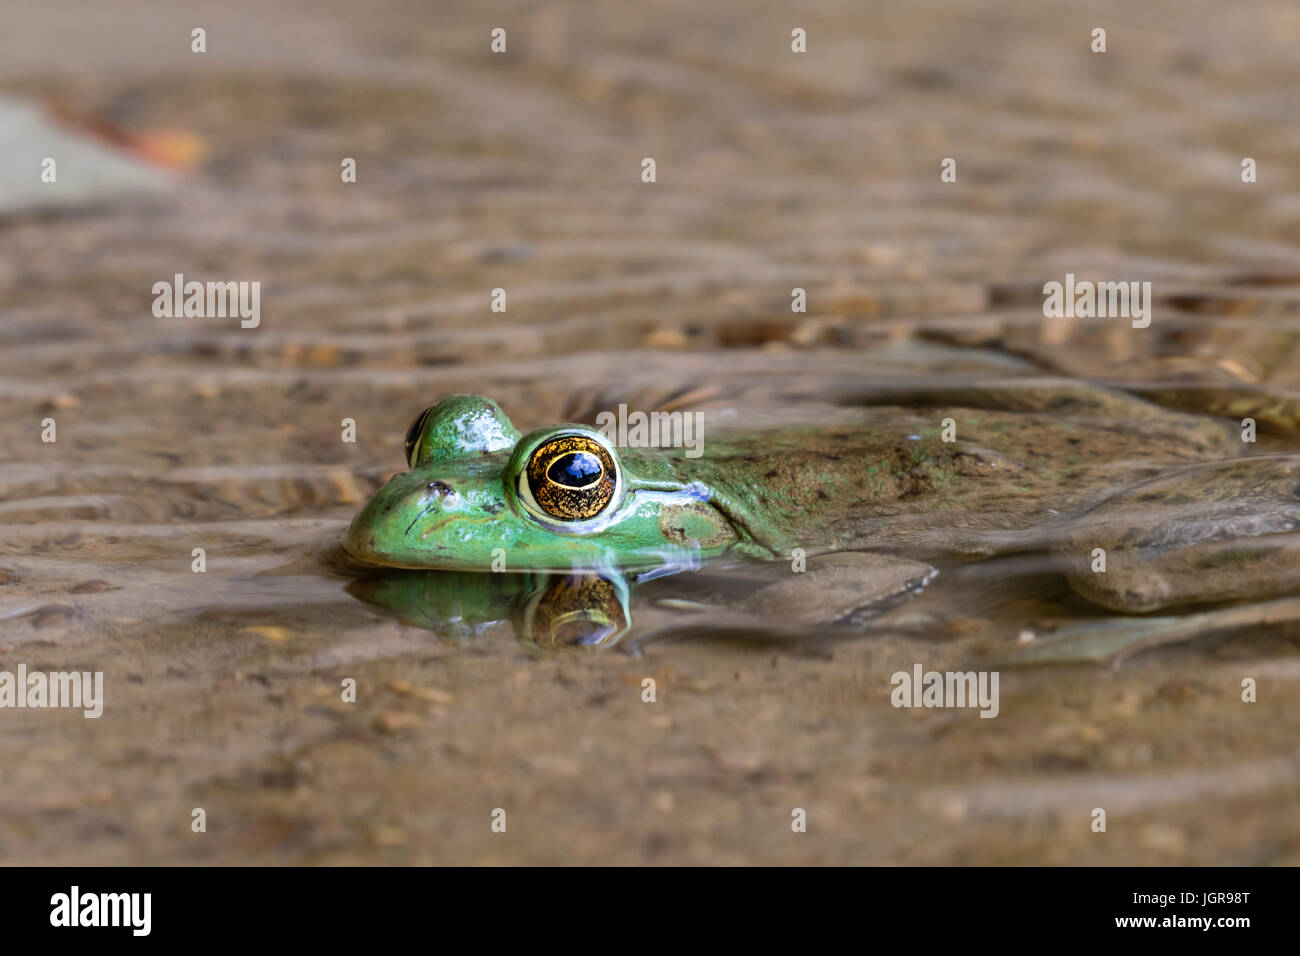 American bullfrog (Lithobates catesbeianus or Rana catesbeiana) in water stream, Ledges State Park, Iowa, USA. - Stock Image